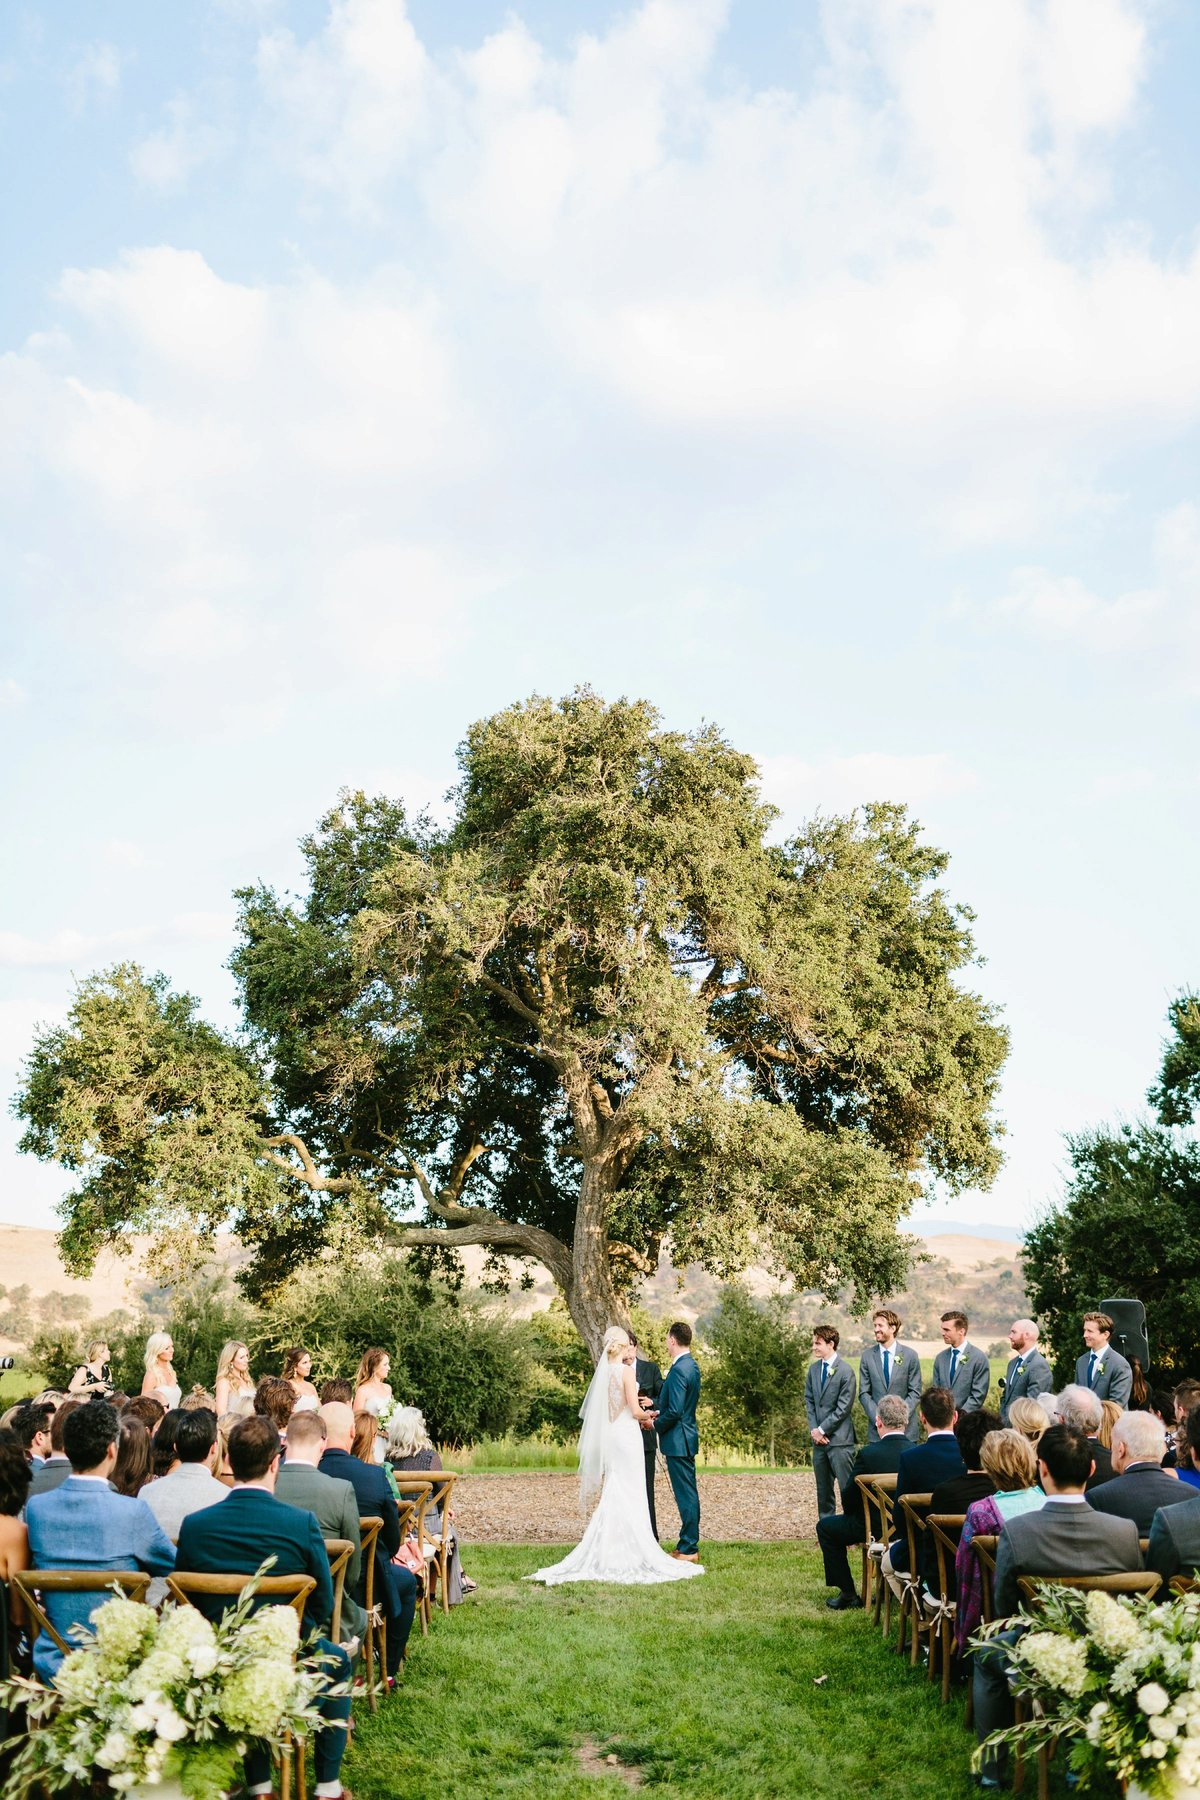 Best California Wedding Photographer-Jodee Debes Photography-167